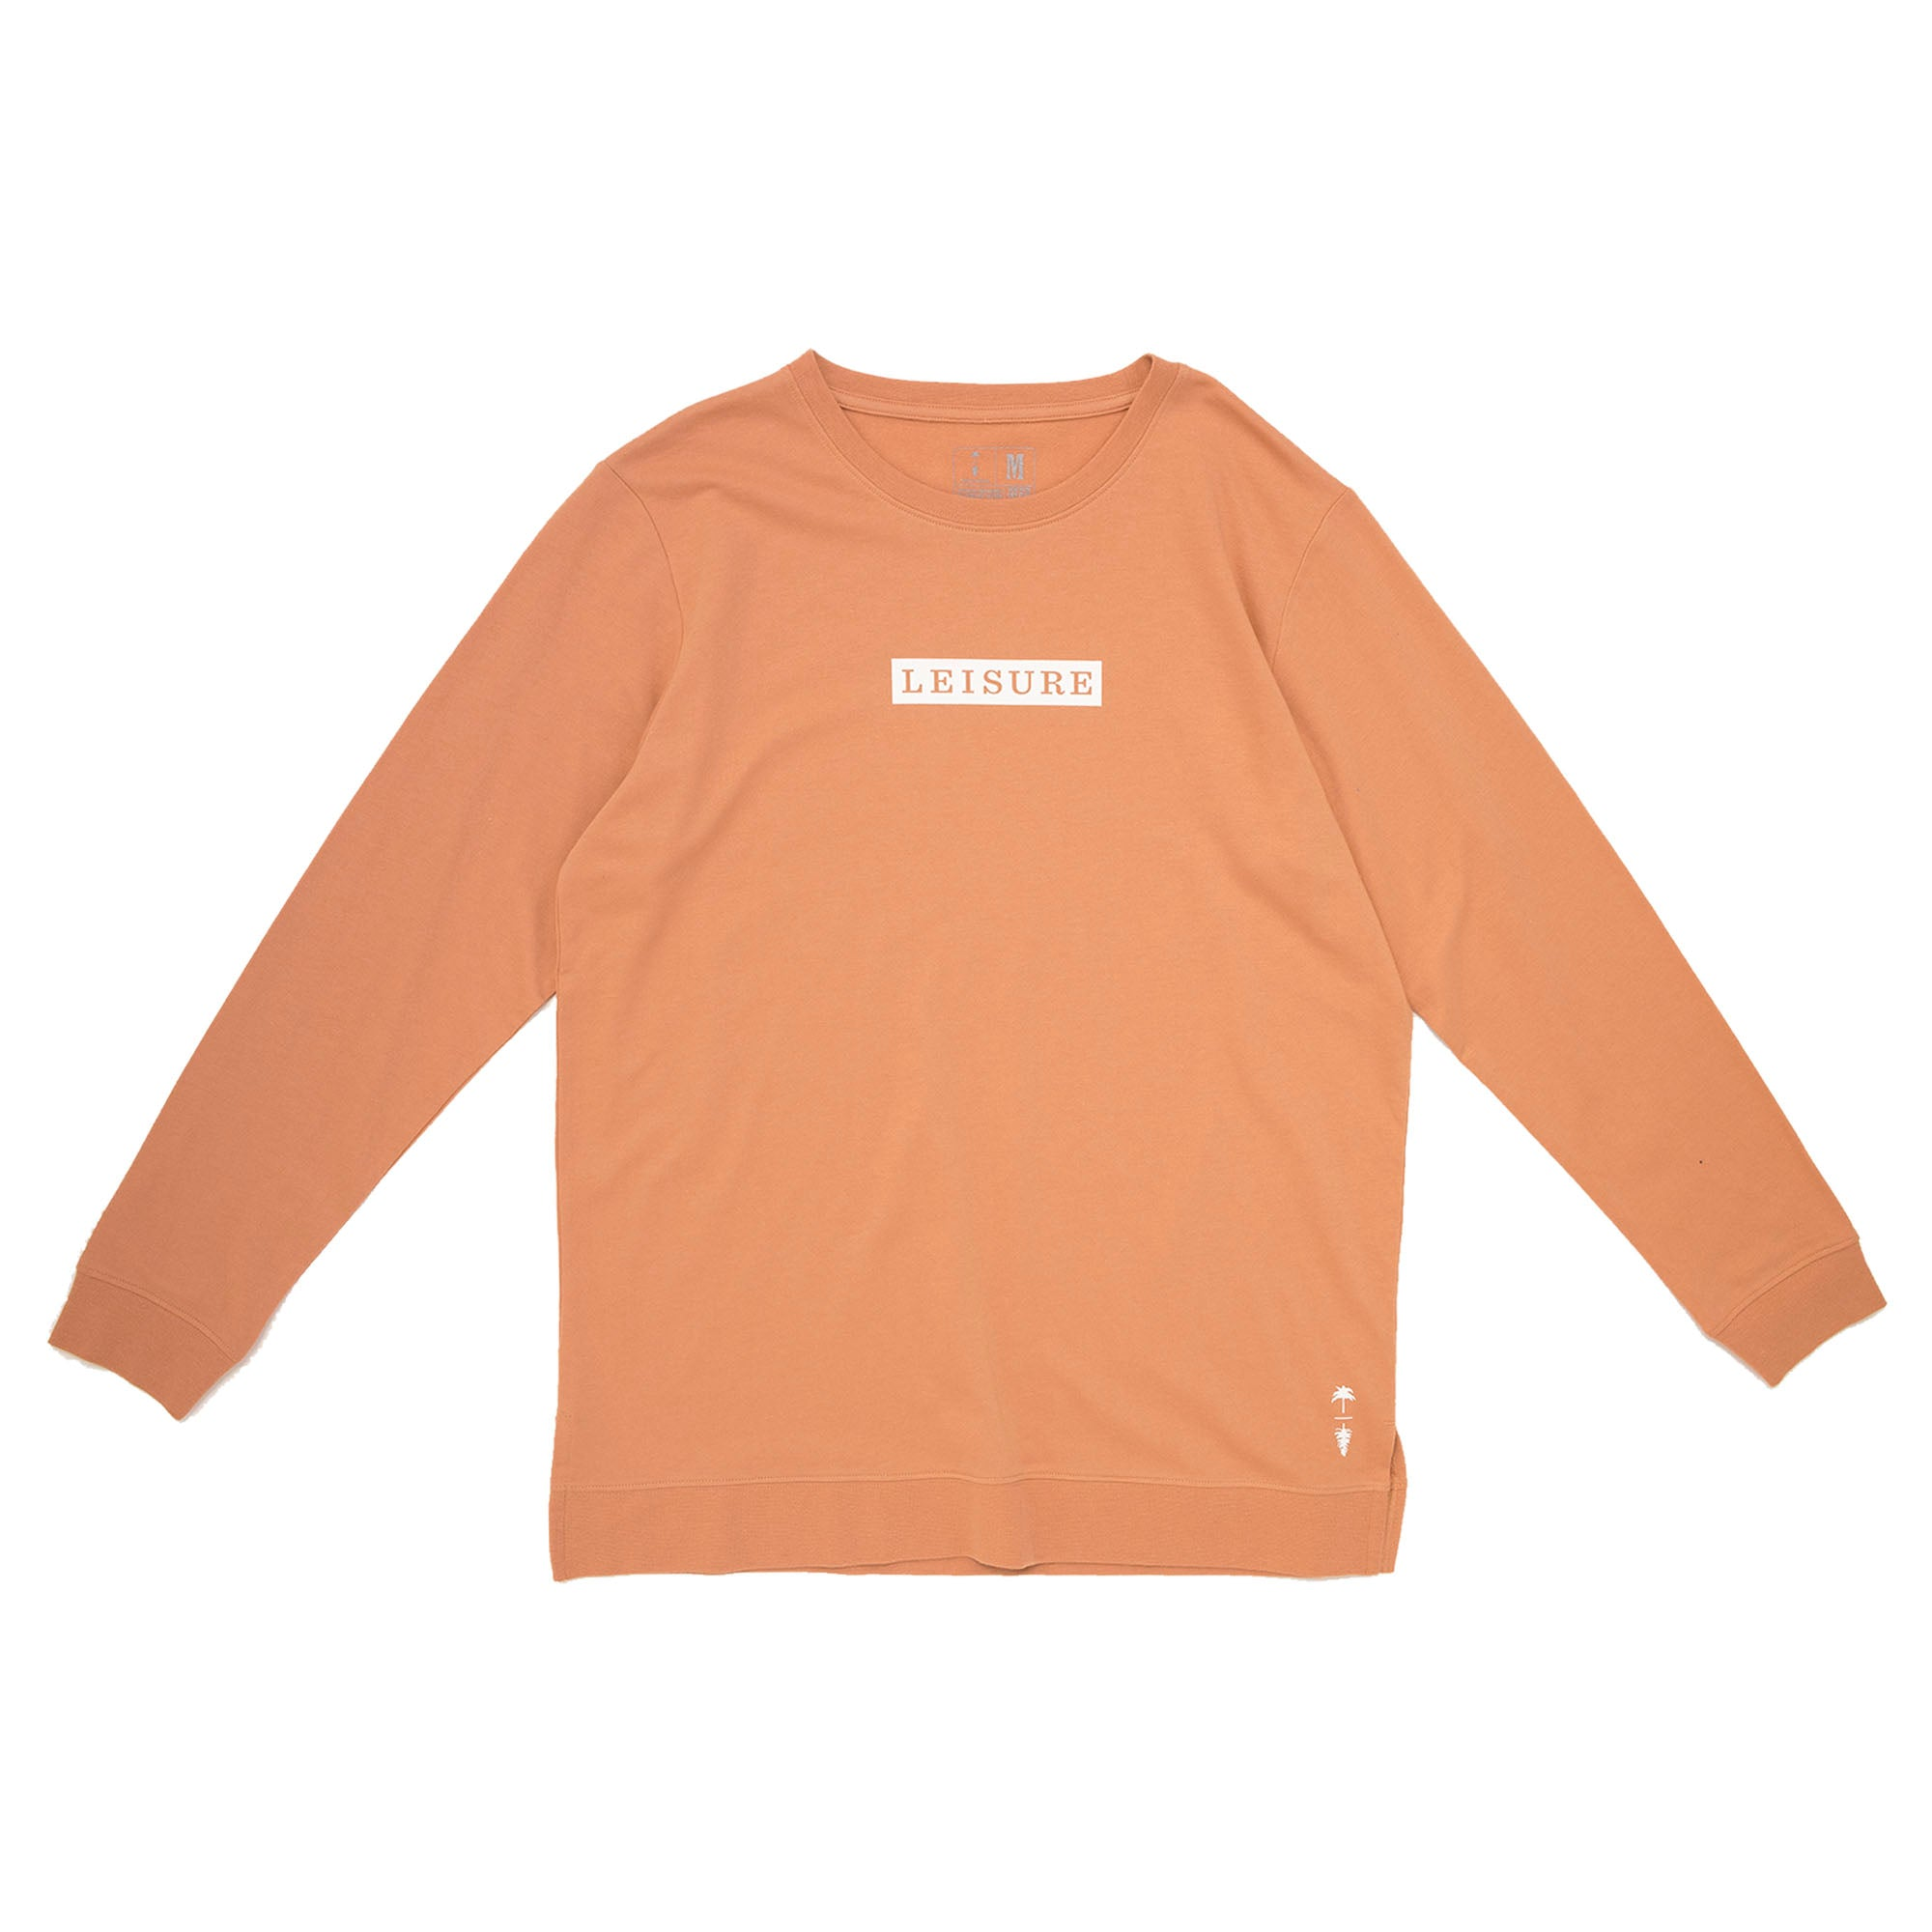 Breeze Leisure Slab Crewneck